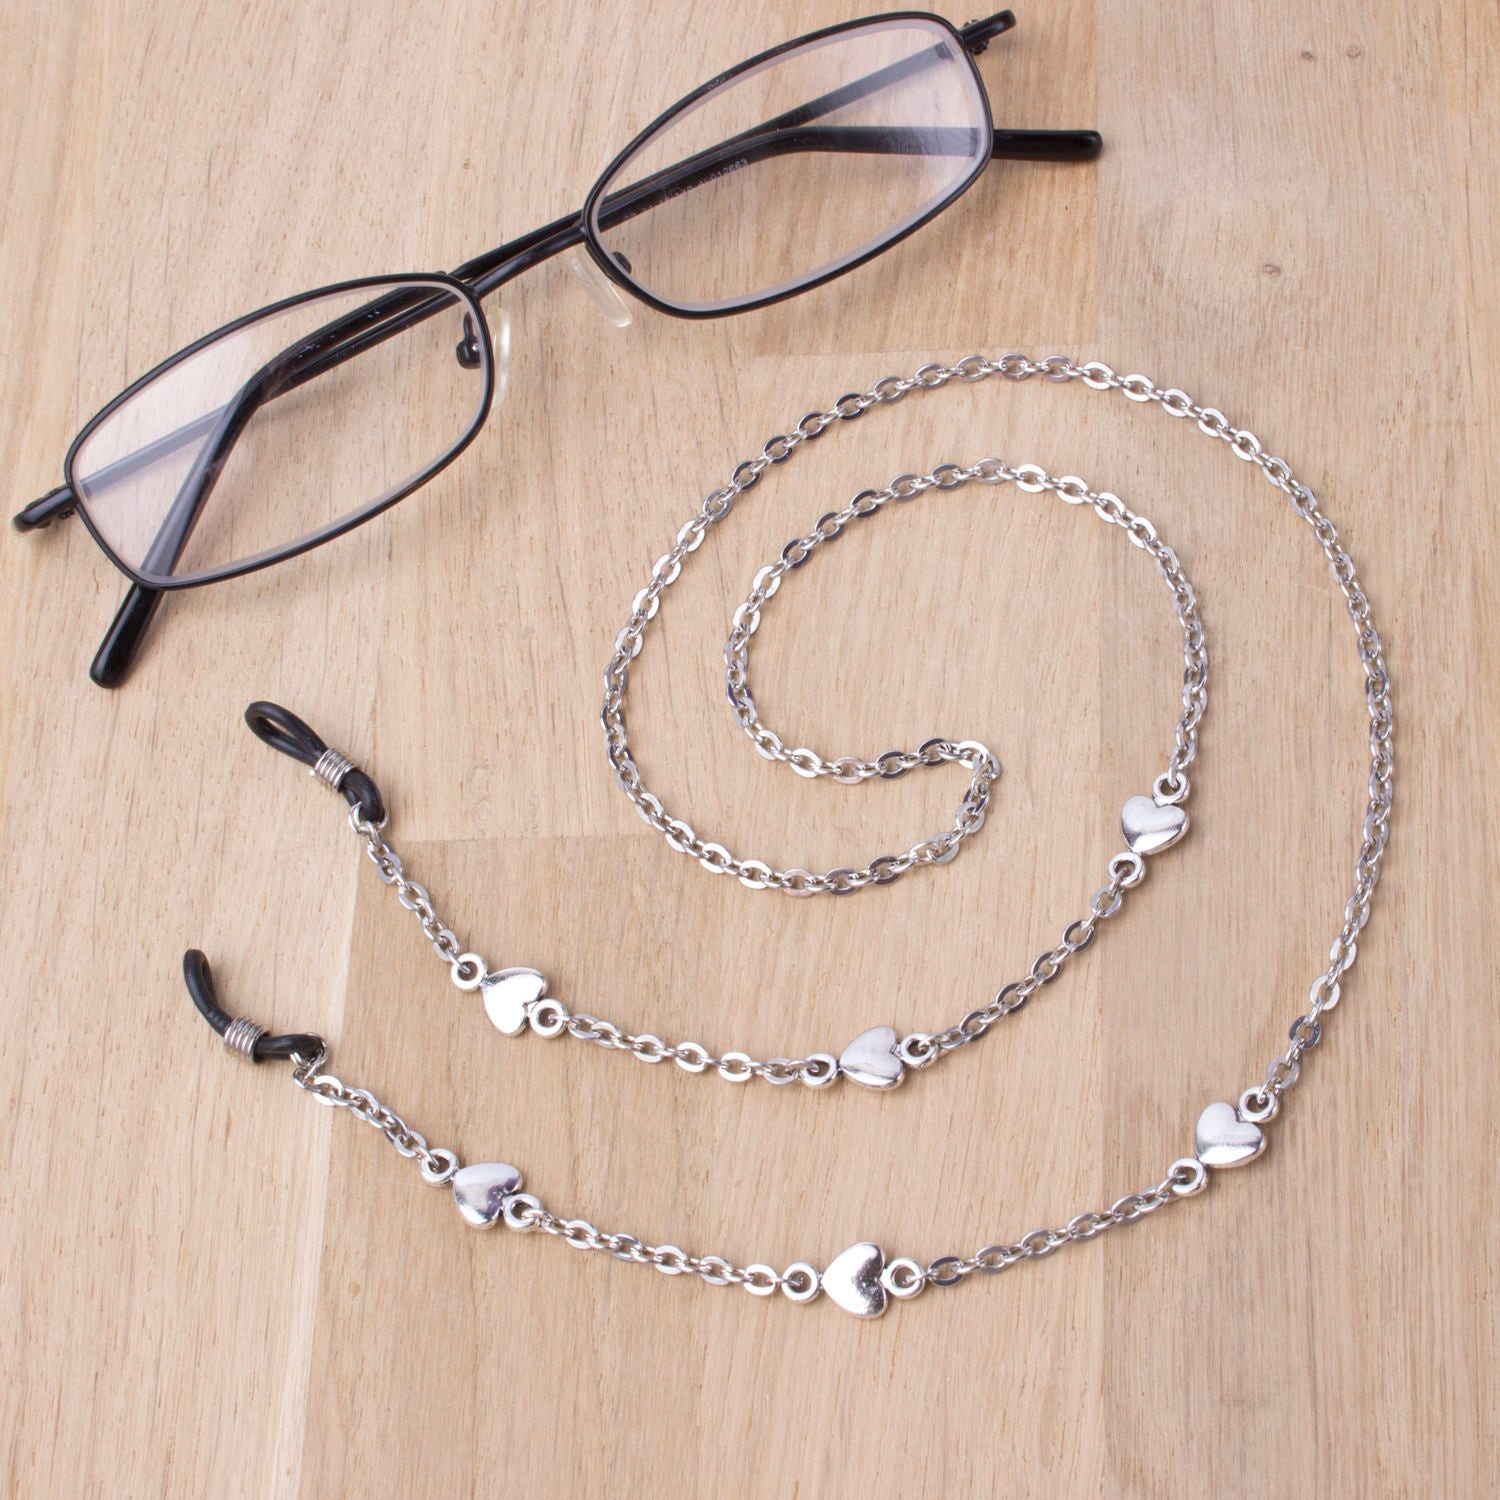 Silver eyeglasses lanyard  elegant heart link glasses chain  Everyday eyewear neck cord  Sunglasses chain  Eyeglasses holder